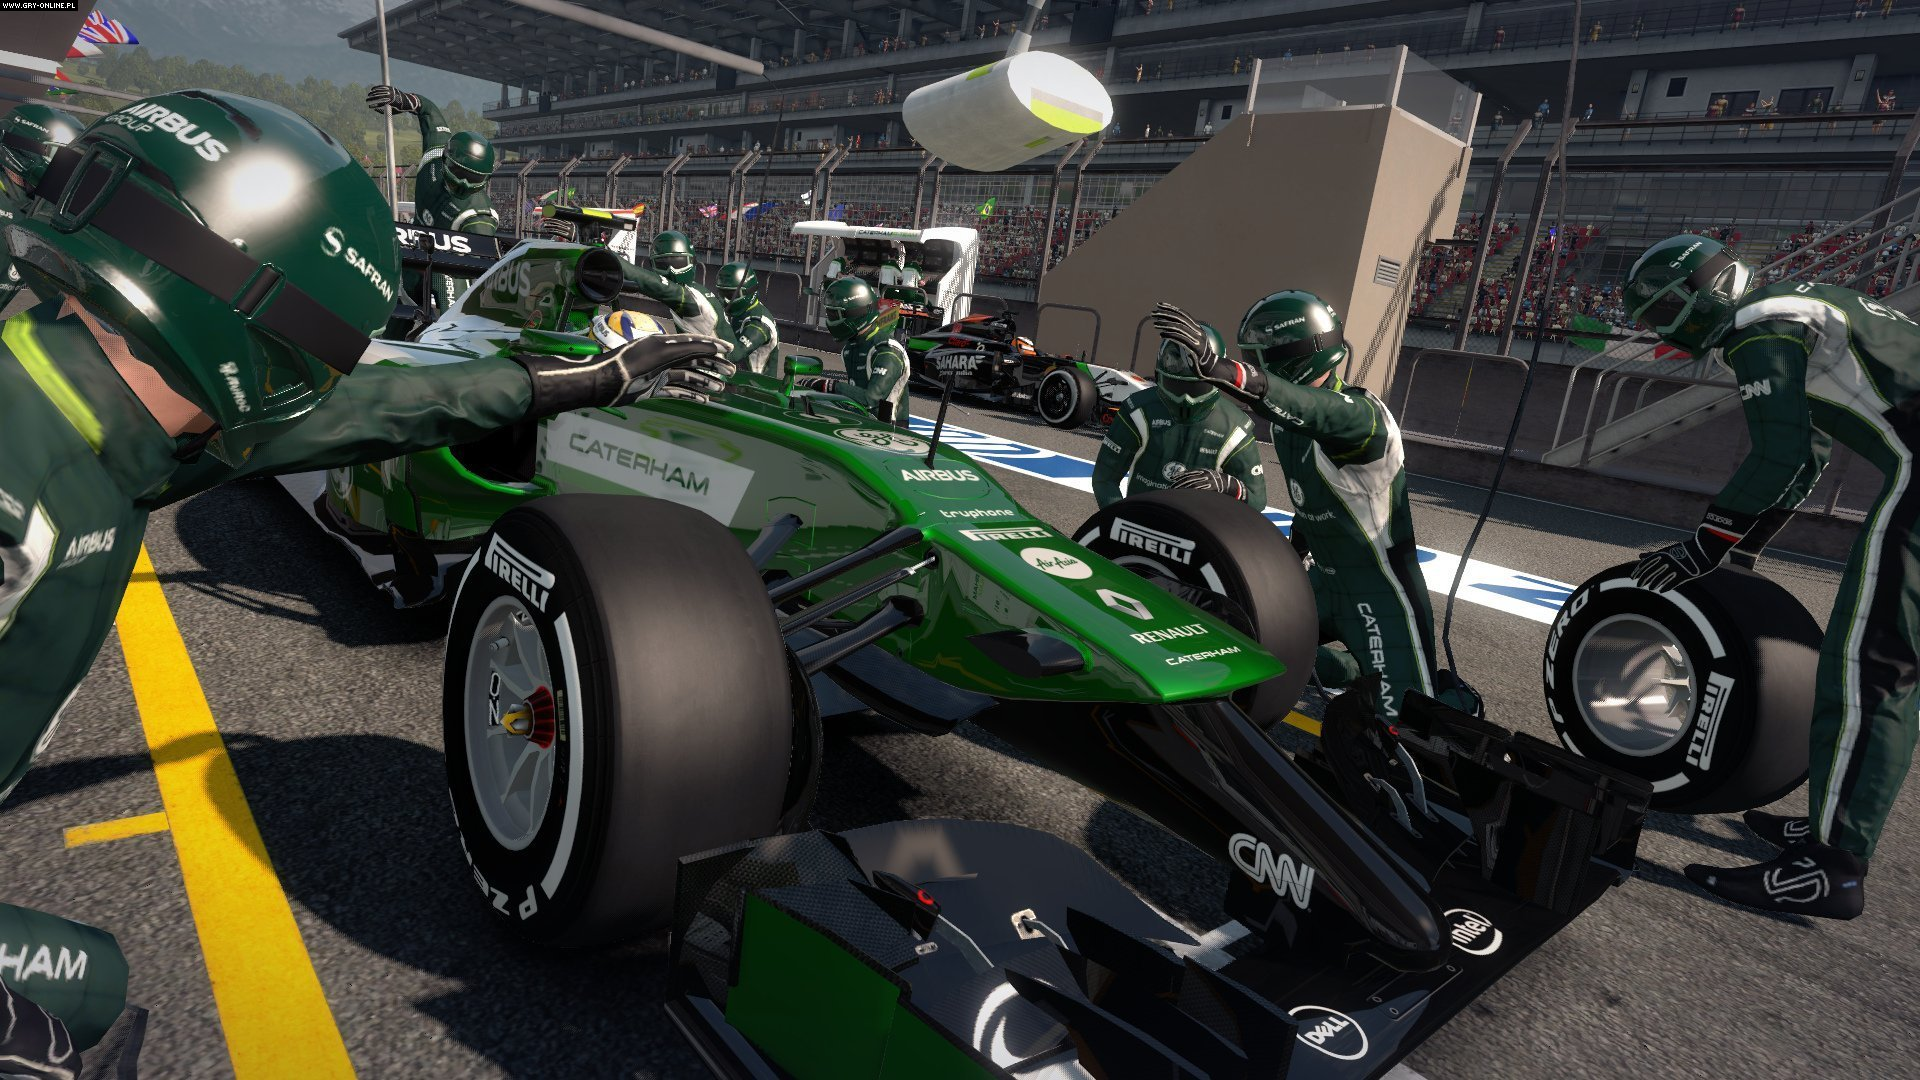 F1 2014 - screenshots gallery - screenshot 4/18